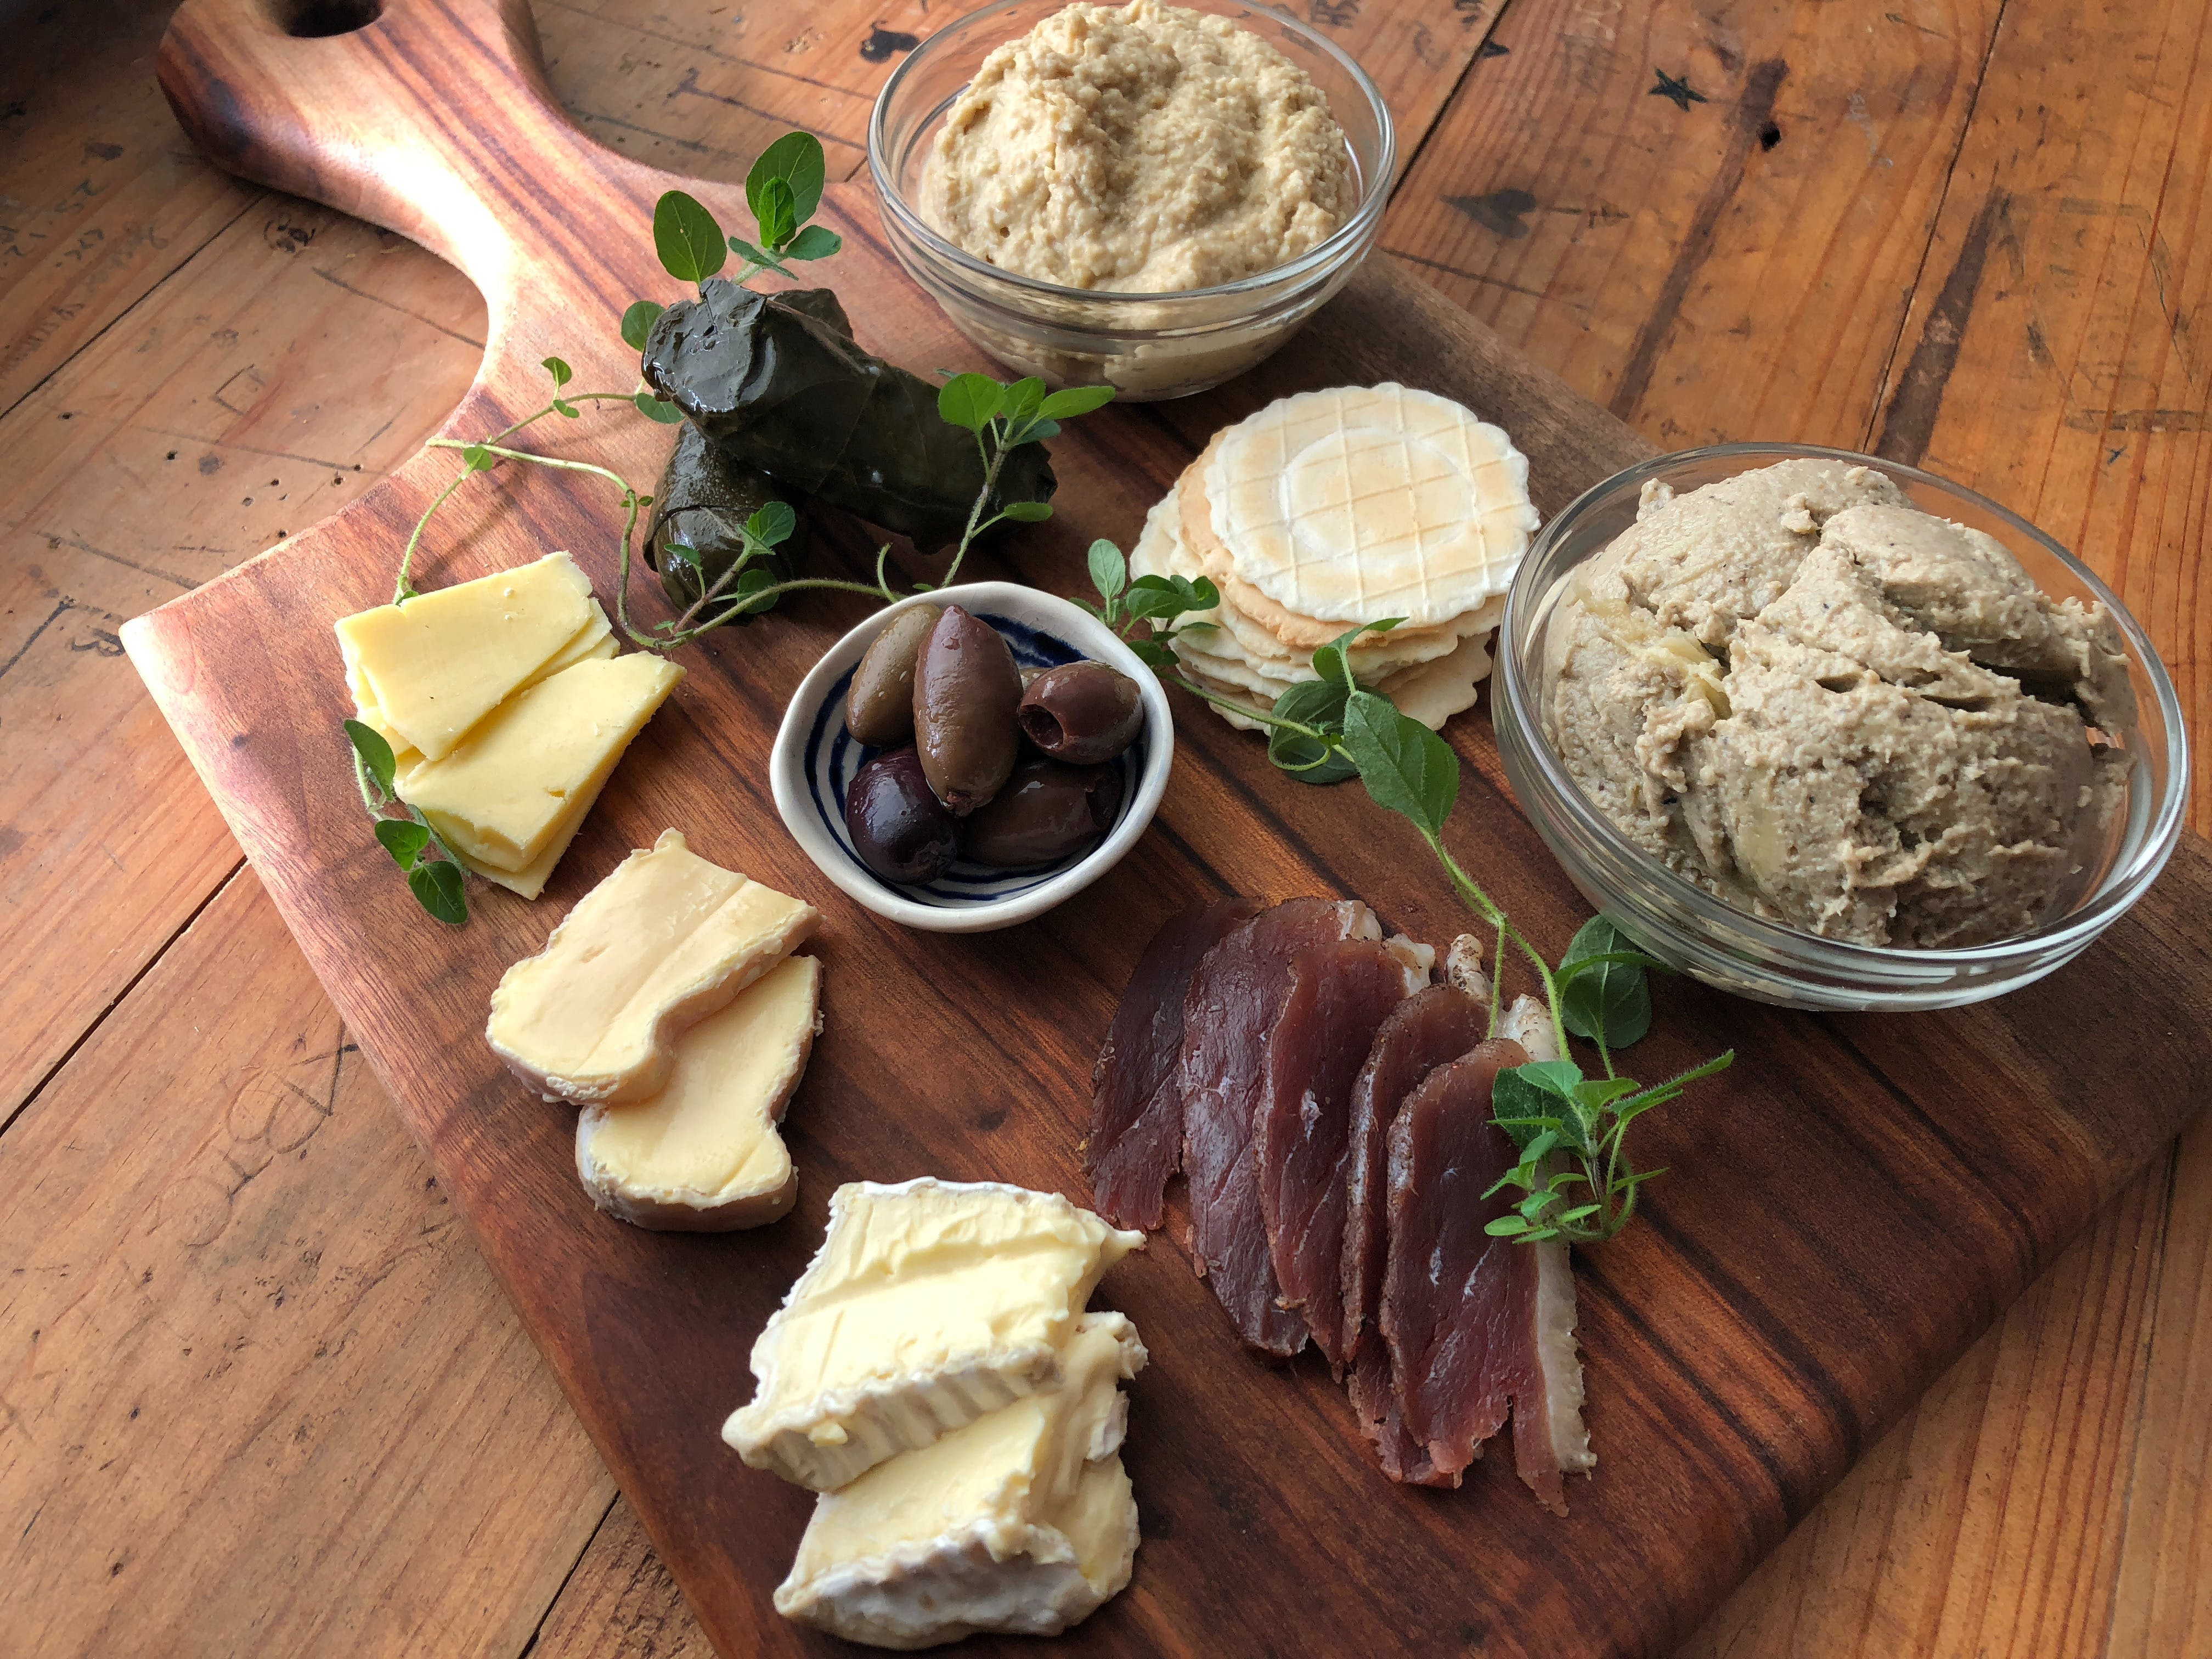 Plenty of choices for grazing platters